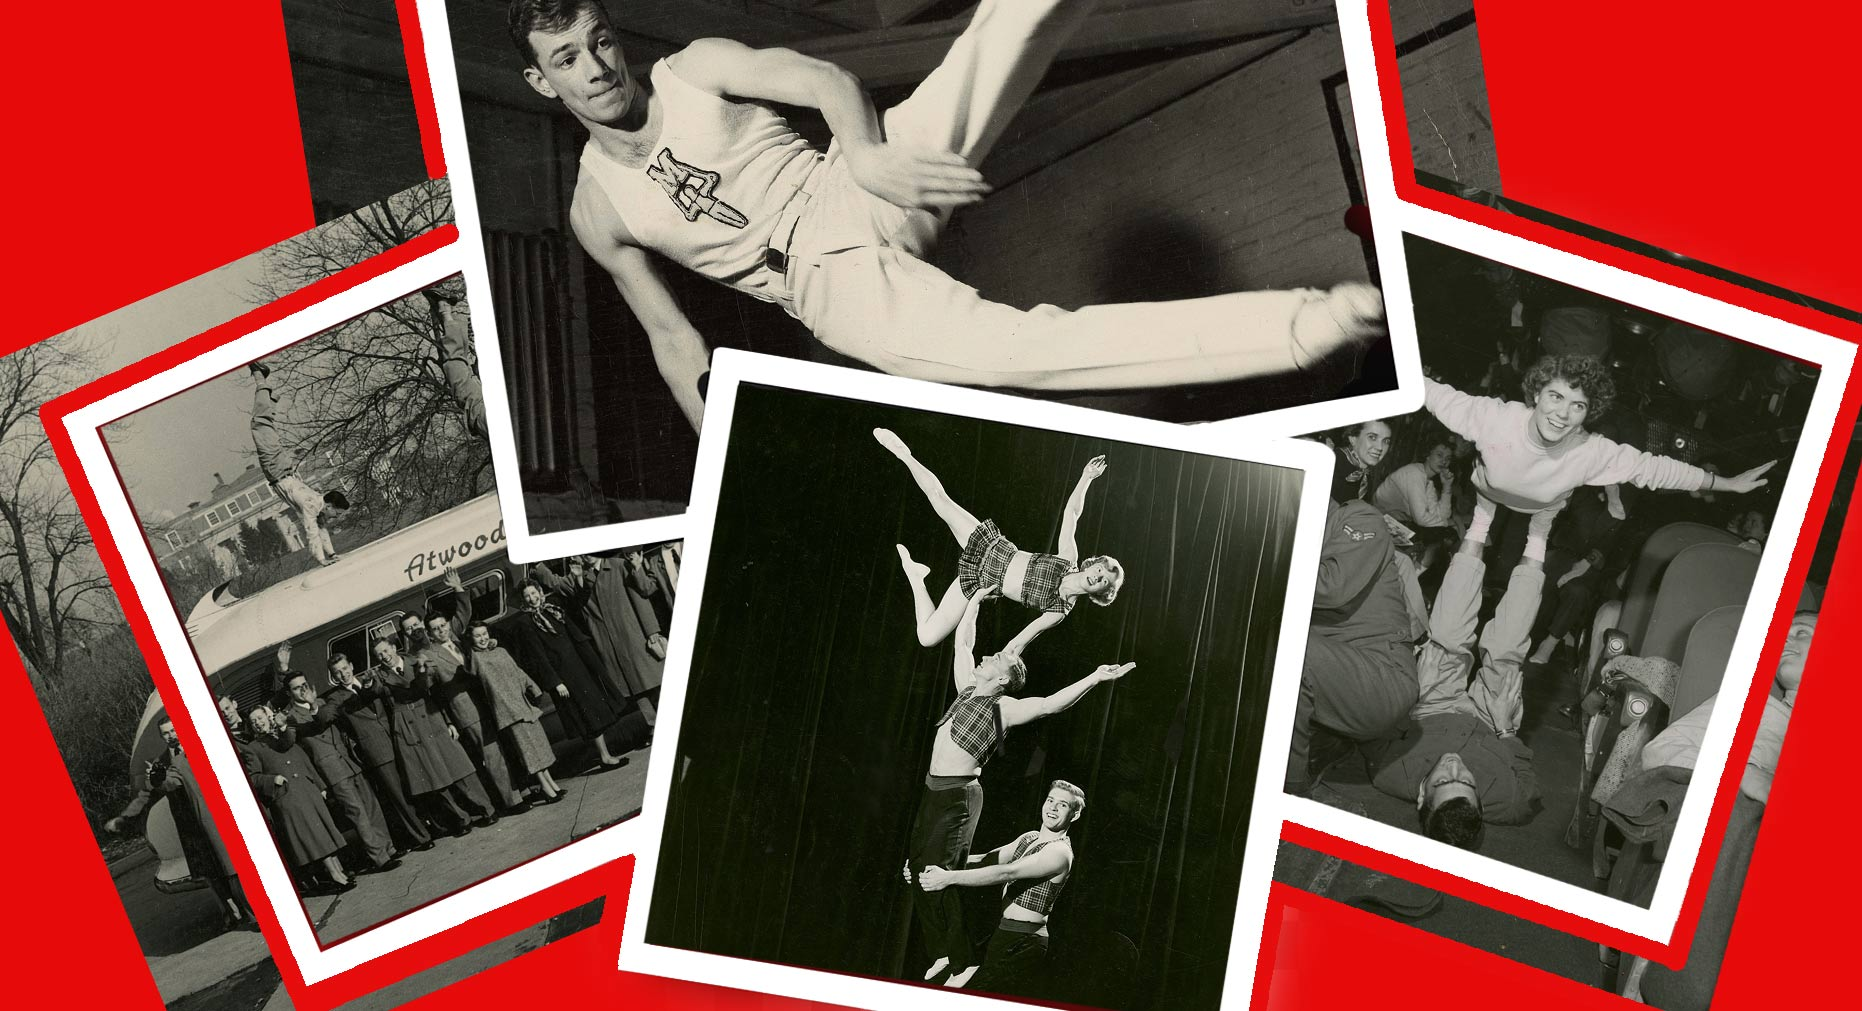 Gymkana, UMD's gymnastics and acrobatics troupe that encourages healthy lifestyles as School of Public Health ambassadors, is celebrating its 75th anniversary this season. (Photos courtesy of University Archives)